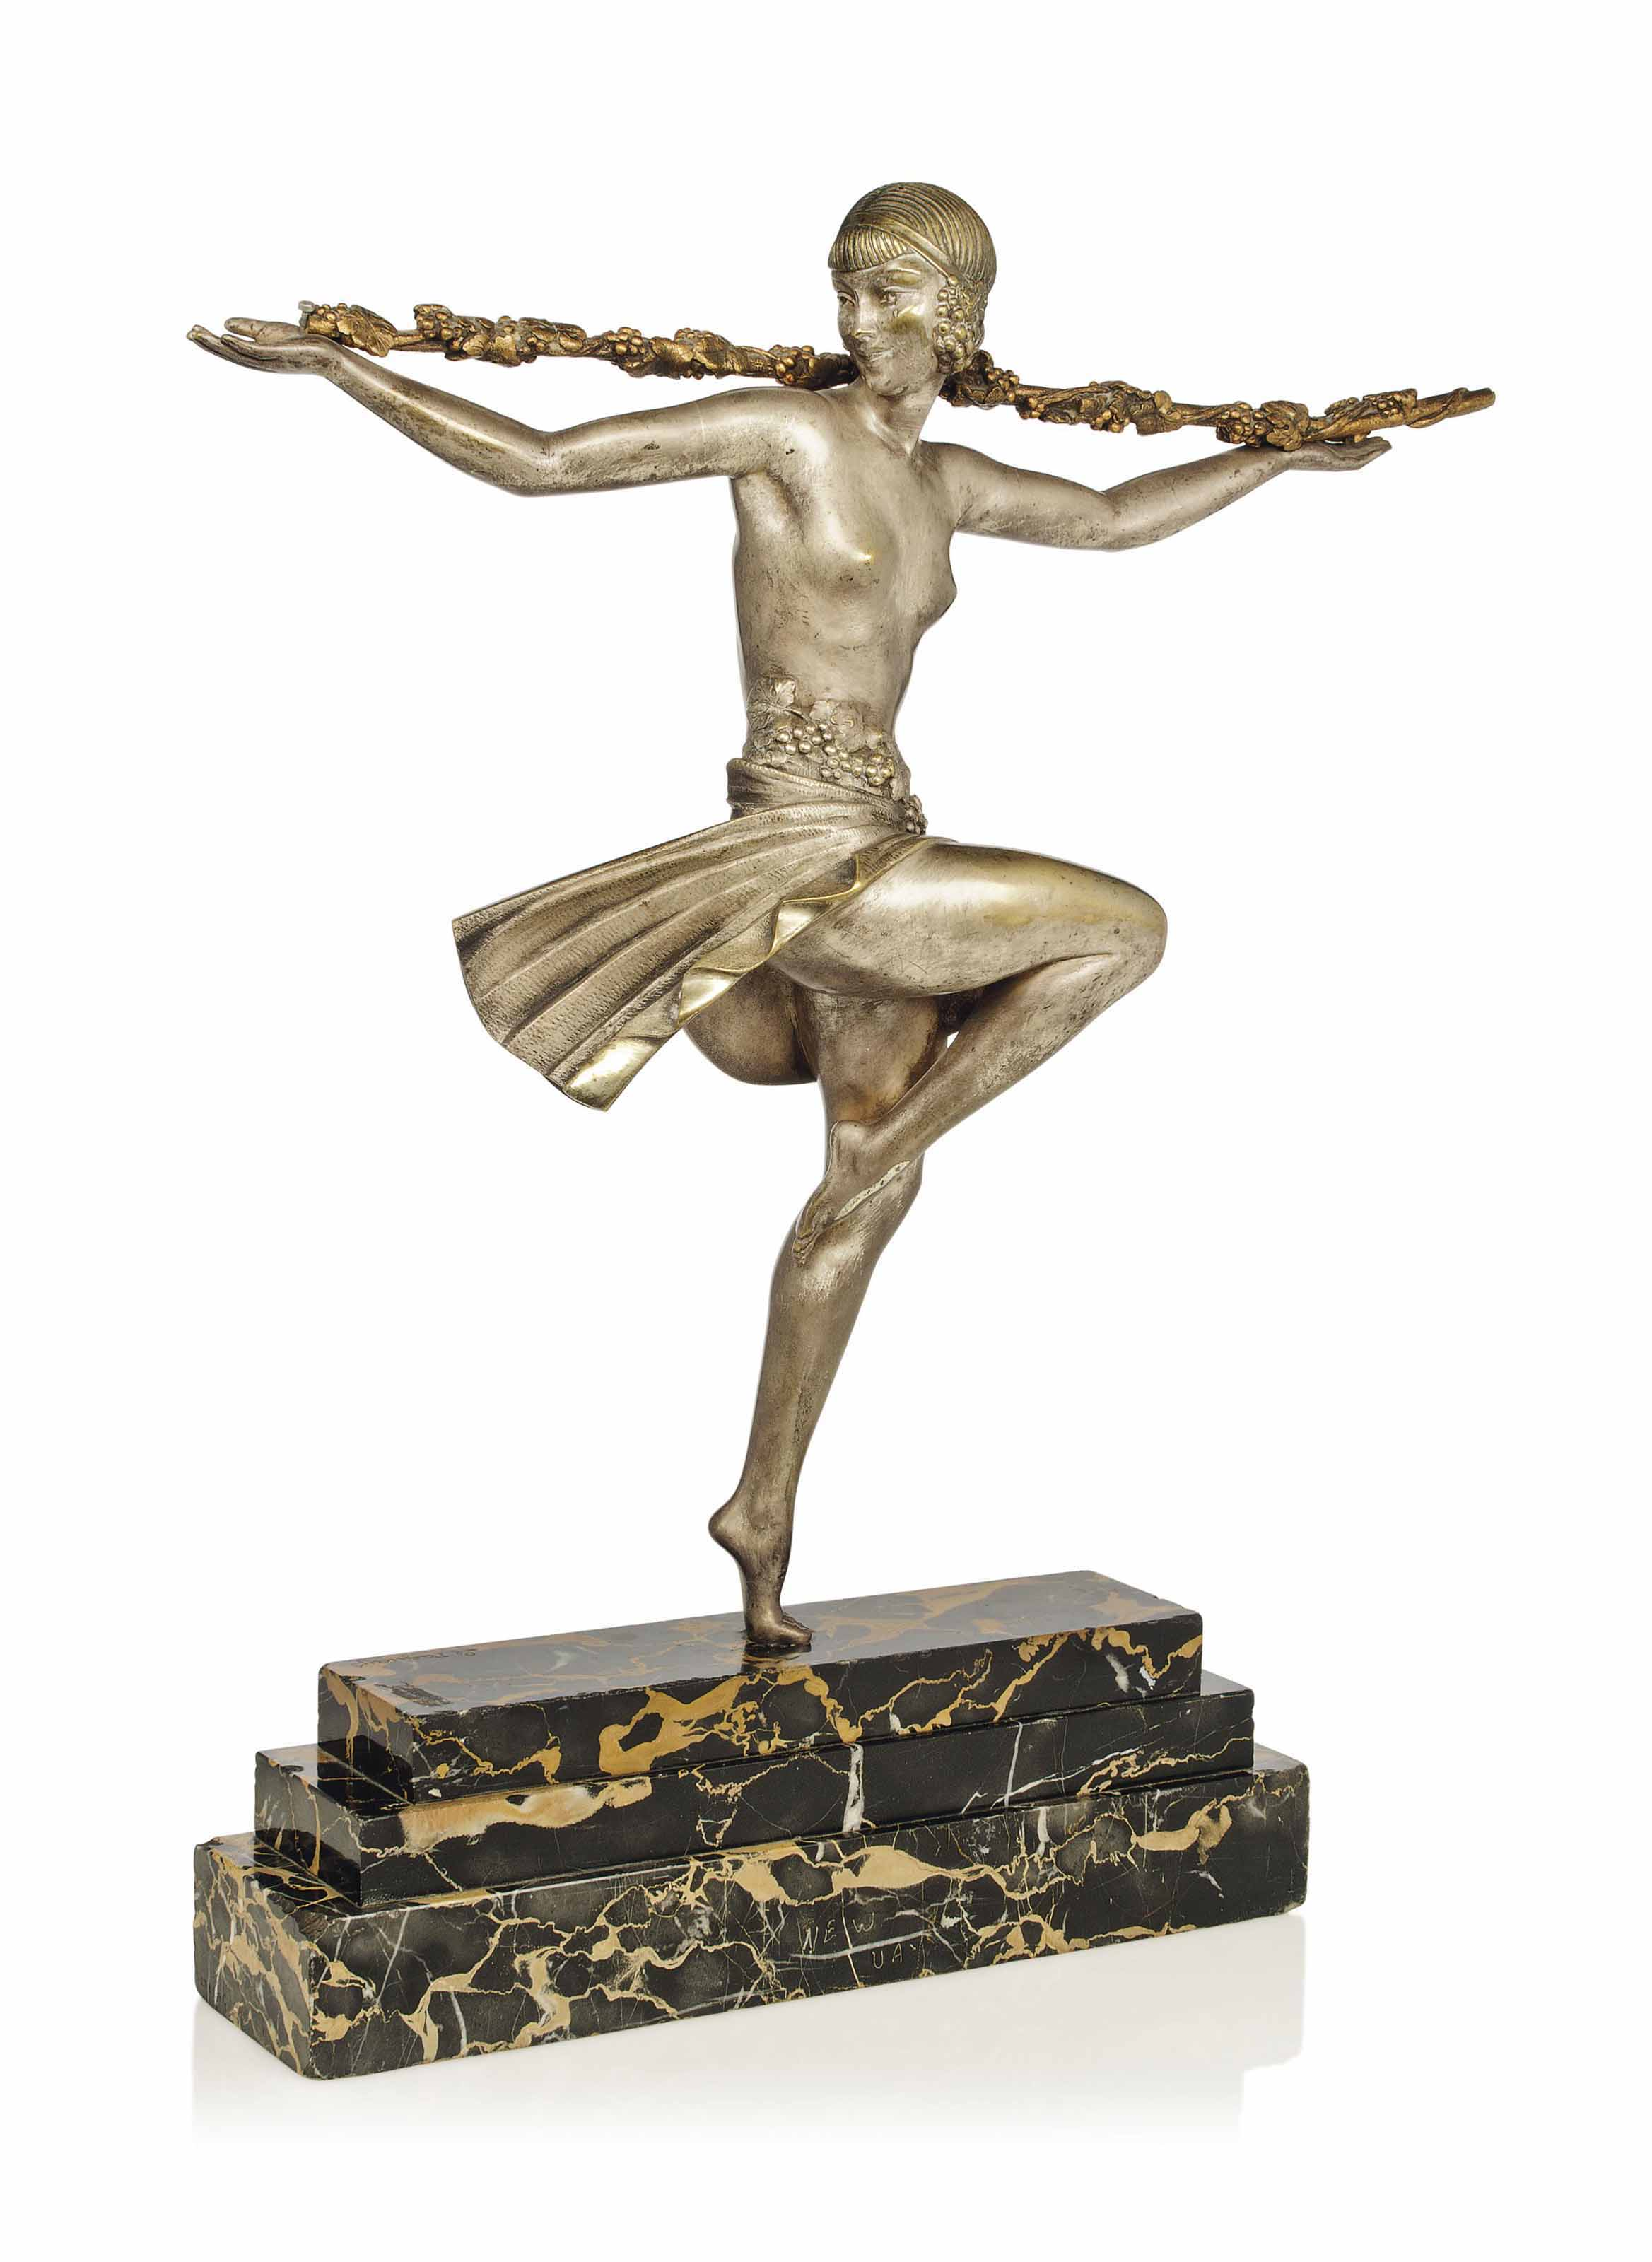 A PIERRE LE FAGUAYS (1892-1935) COLD-PAINTED SILVERED BRONZE FIGURE